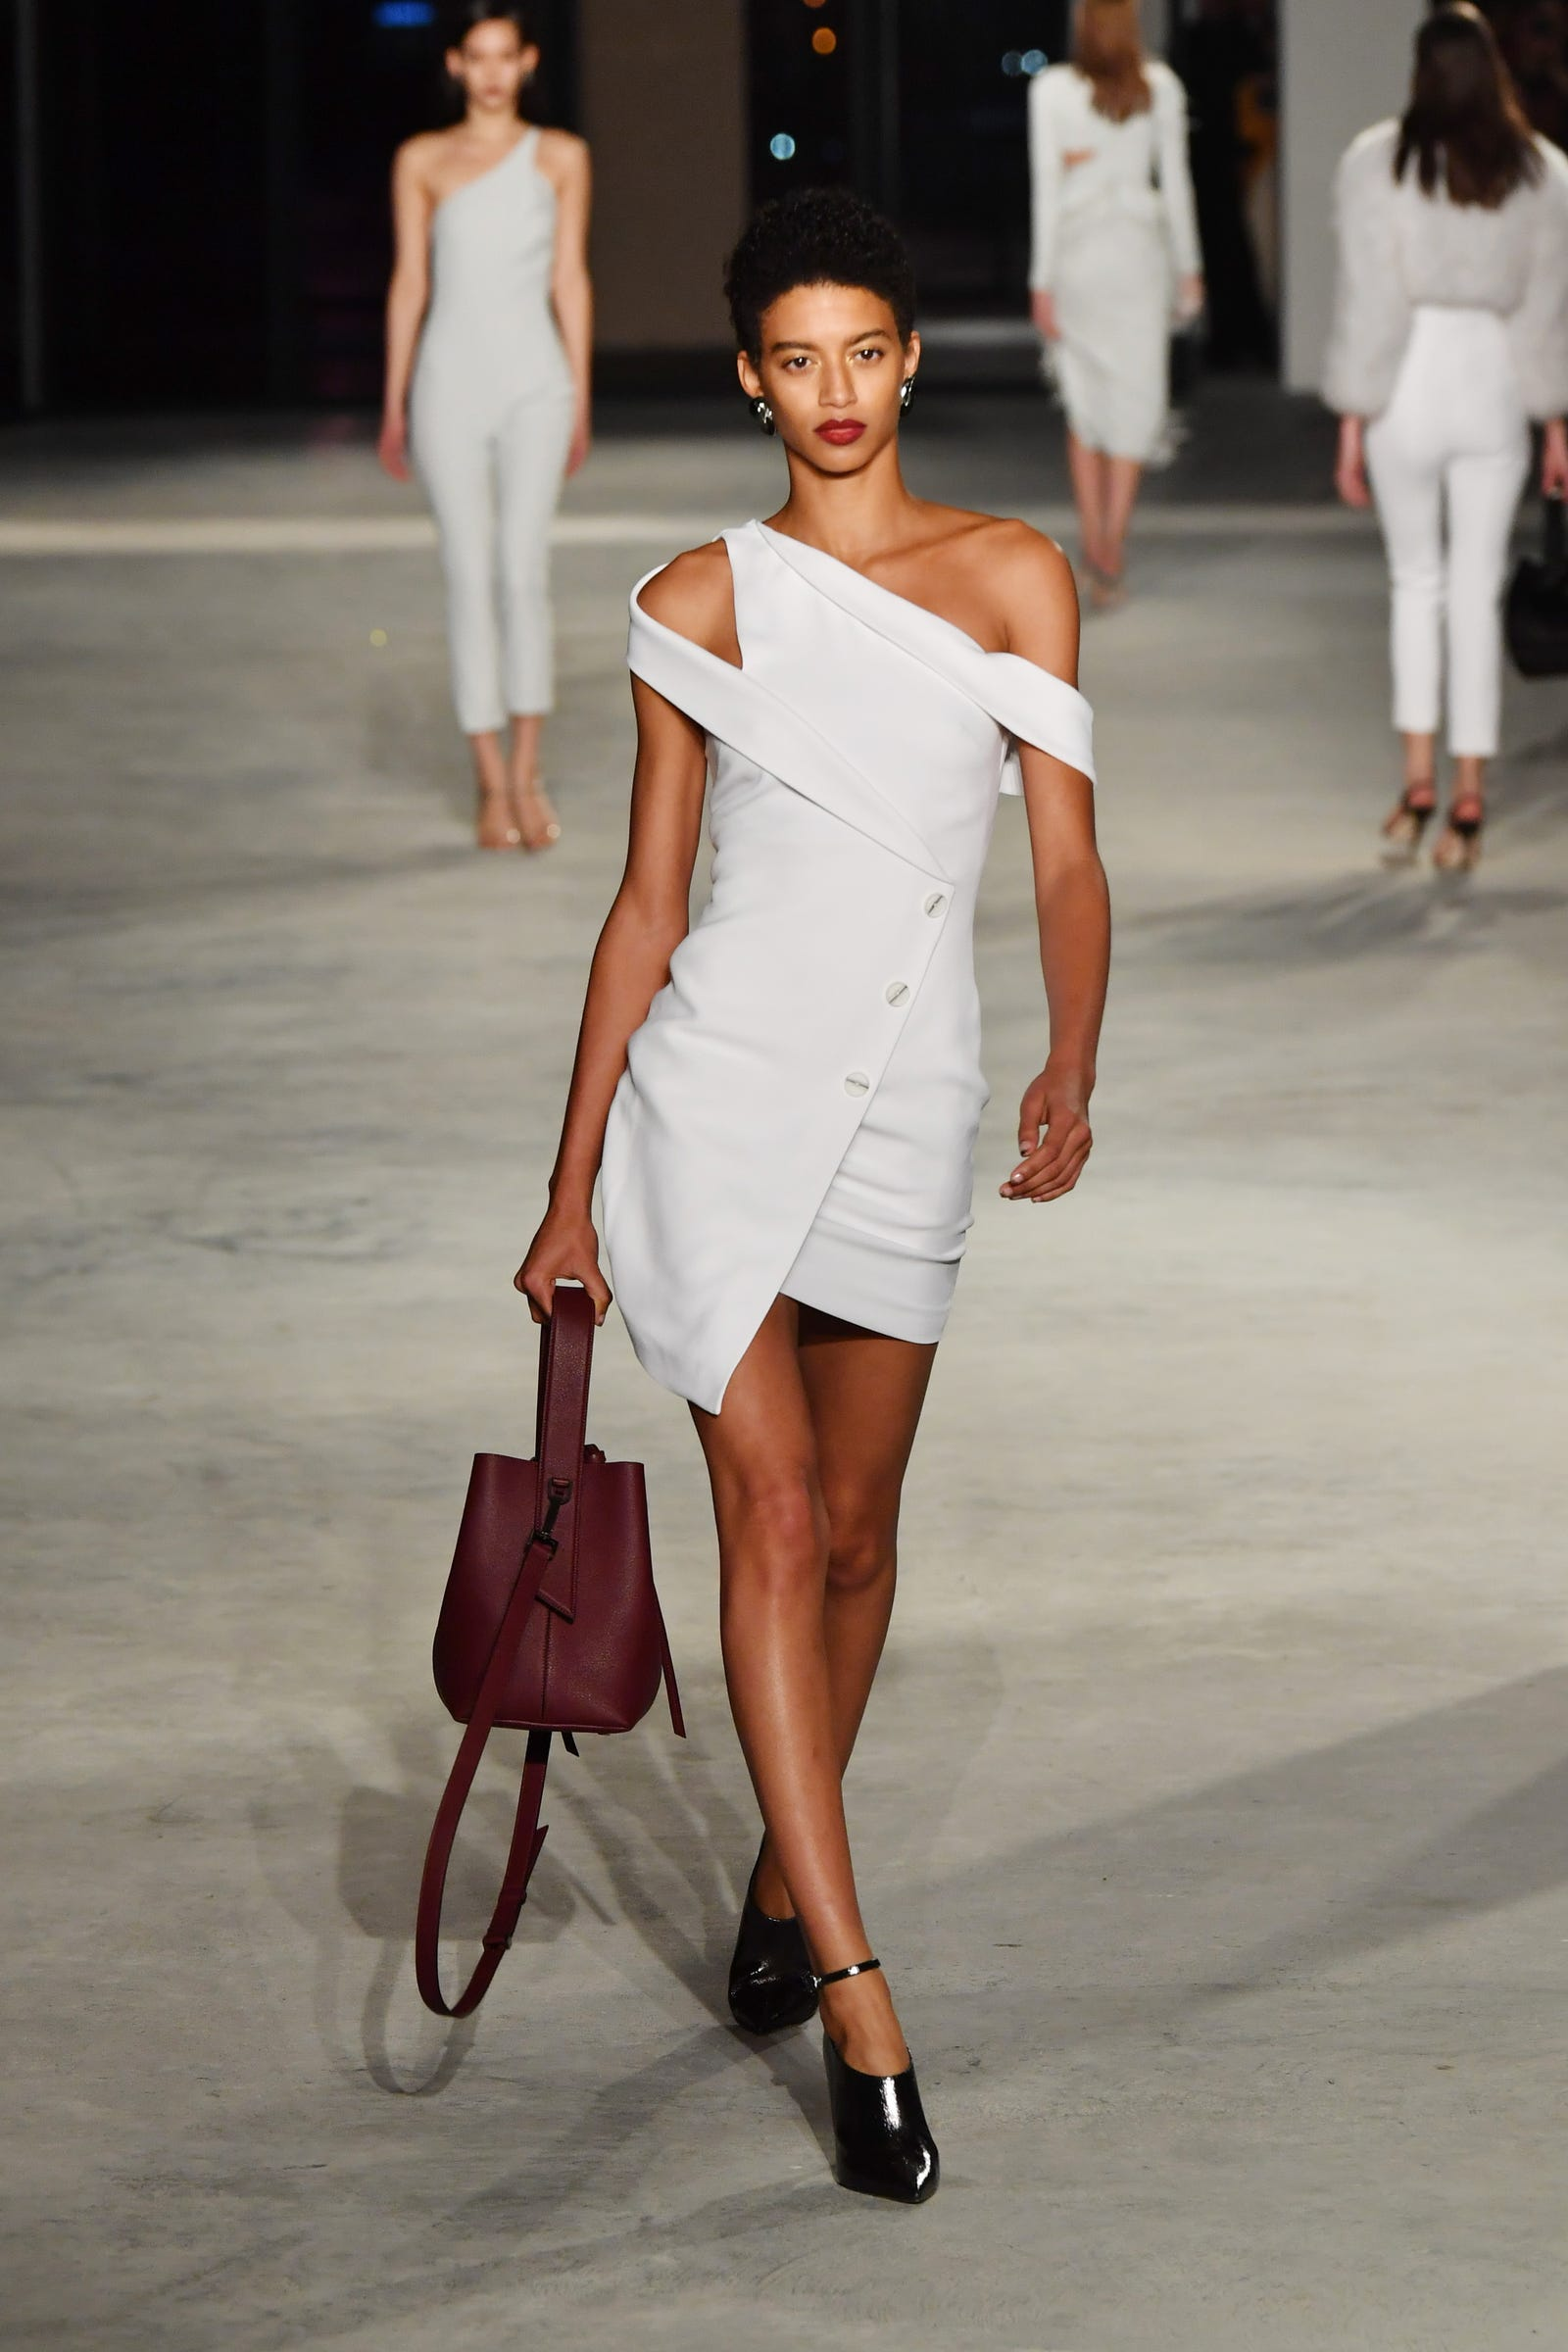 Slaven Vlasic/Getty Images for New York Fashion Week: The Shows